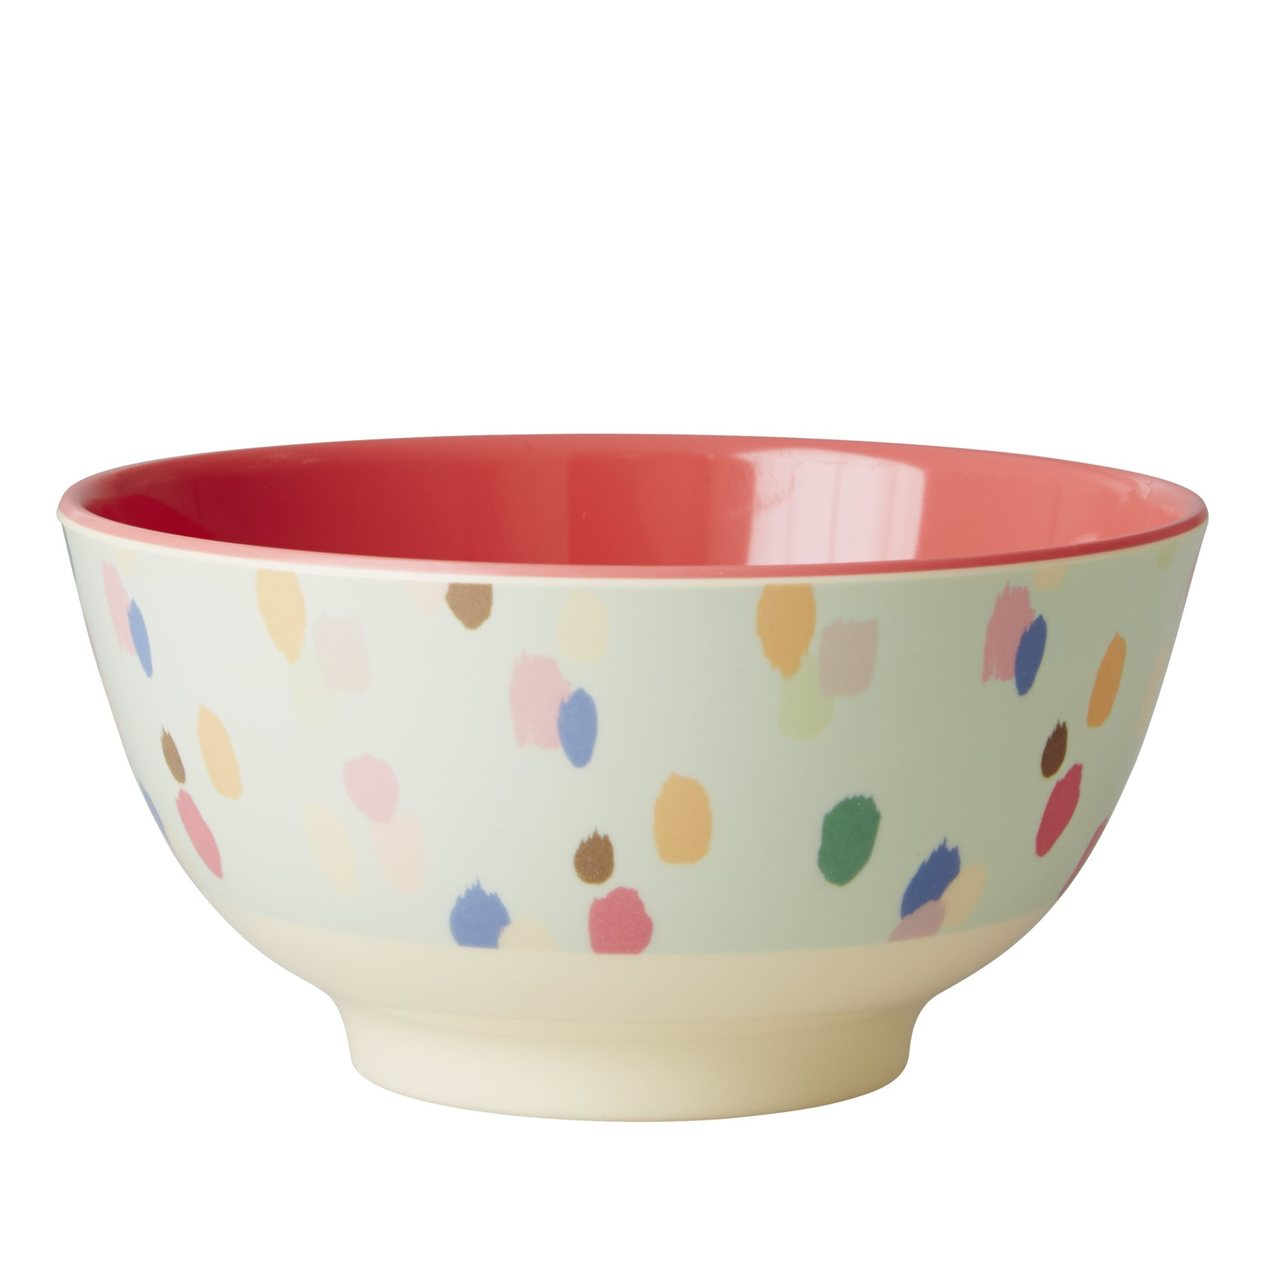 Melamine Two-Tone Bowl, Dapper Dot Print